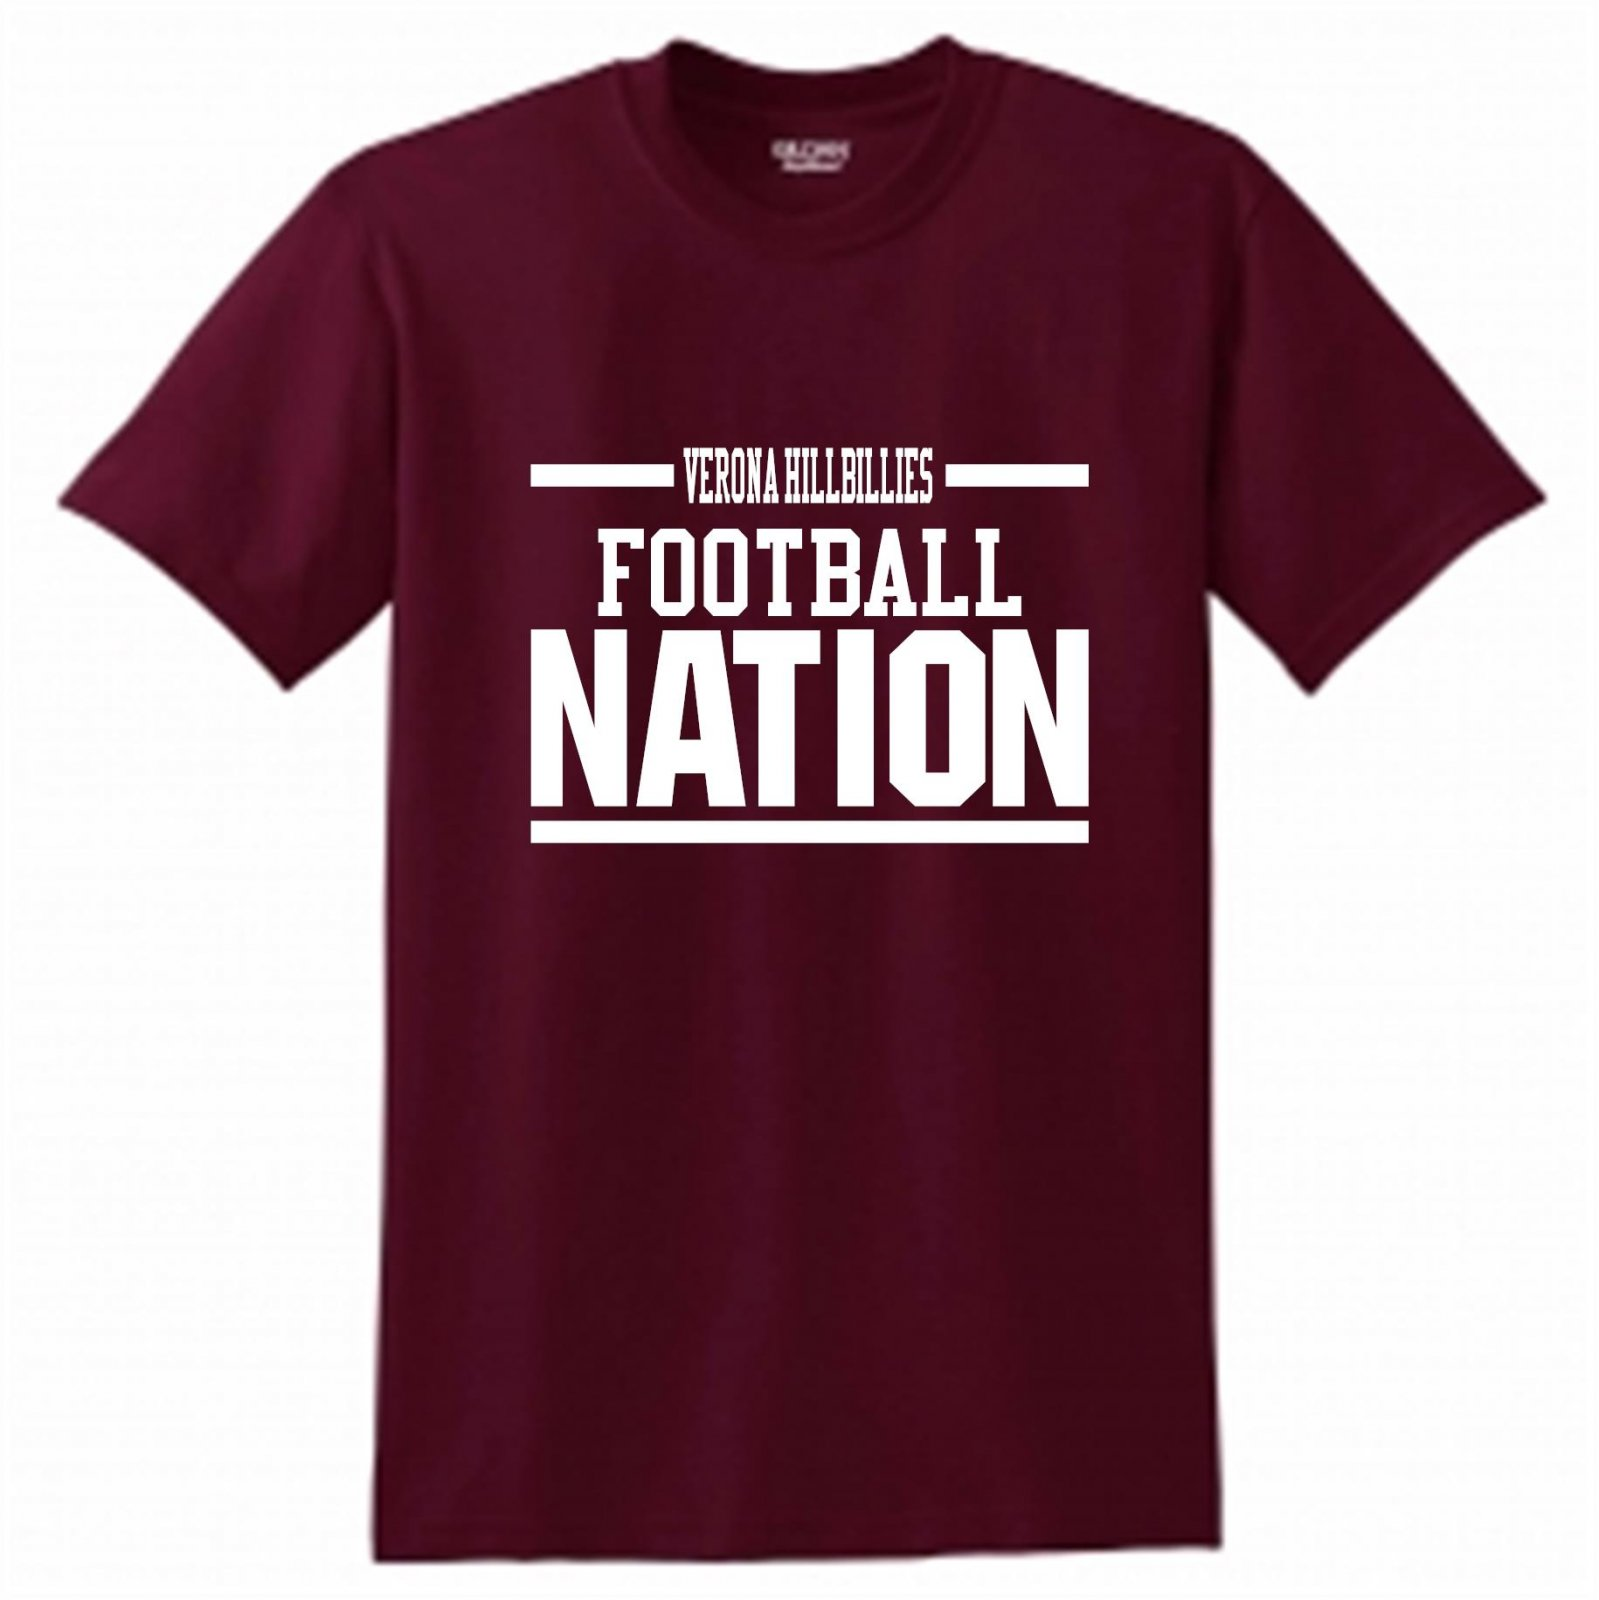 Hillbillies Football Nation Tradition Never Graduates Short Sleeve